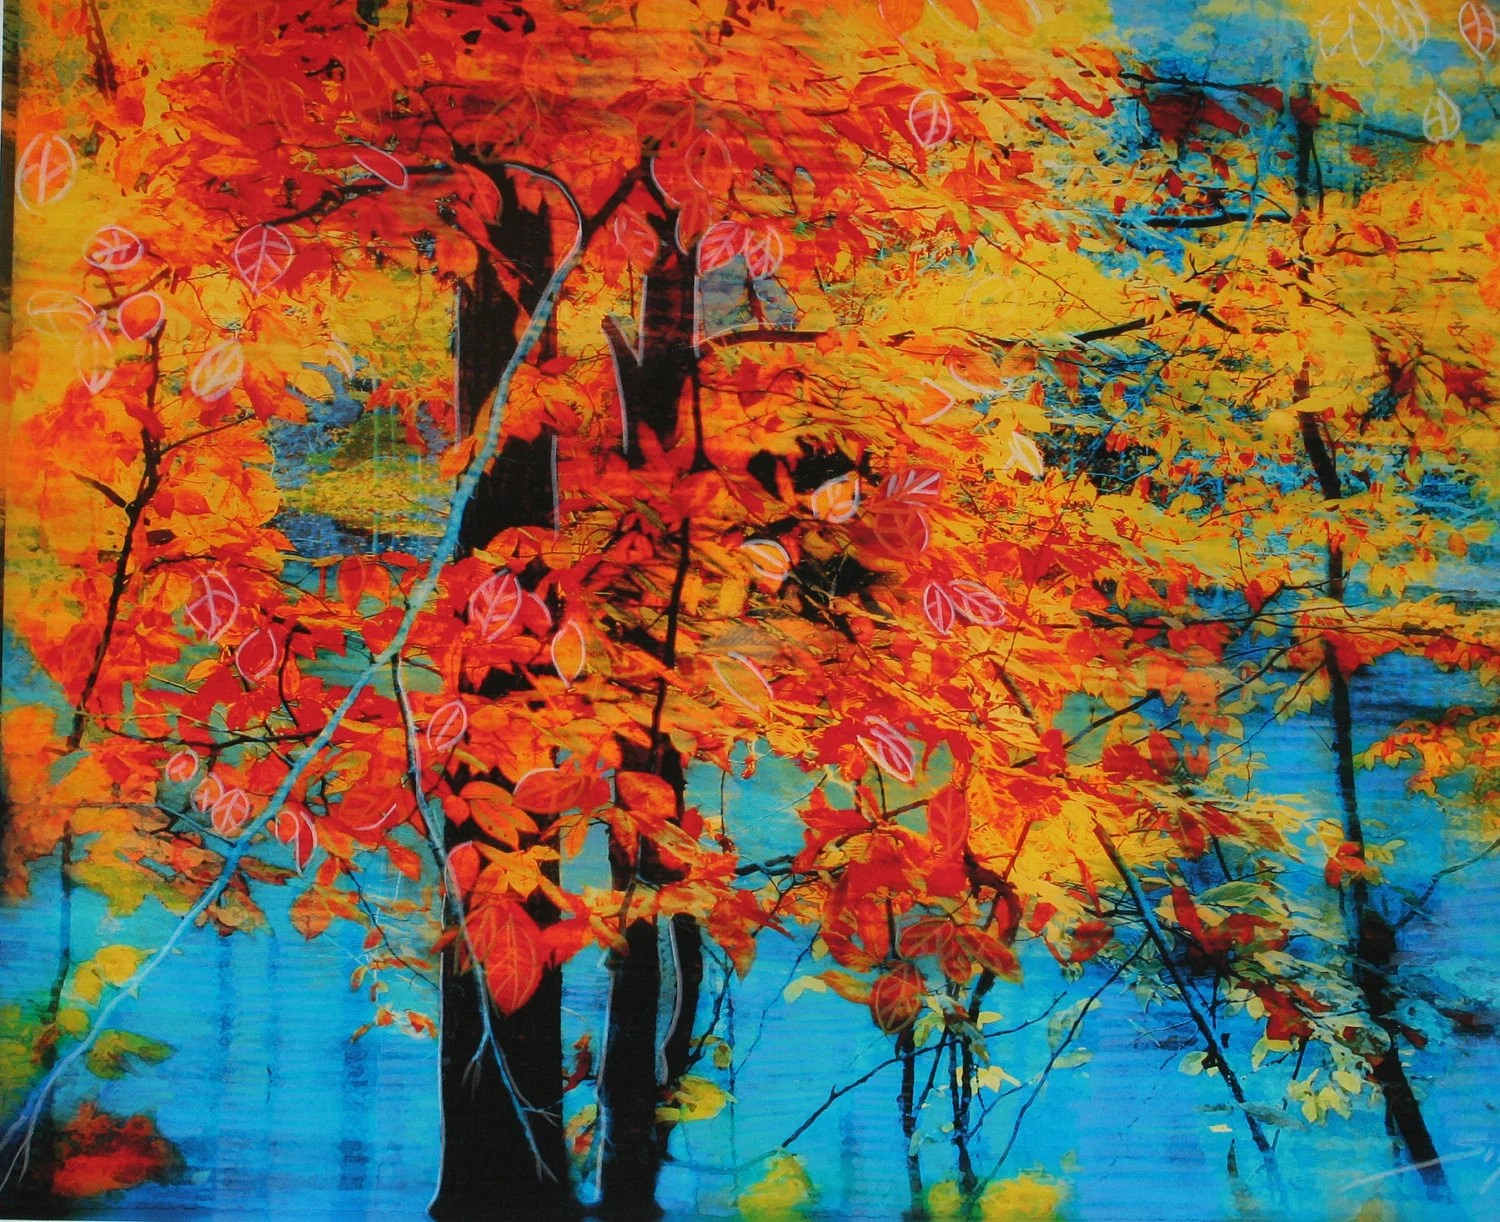 Autumn tapestry, 8x10 Original Signed Fine Art altered photograph with painting and drawing